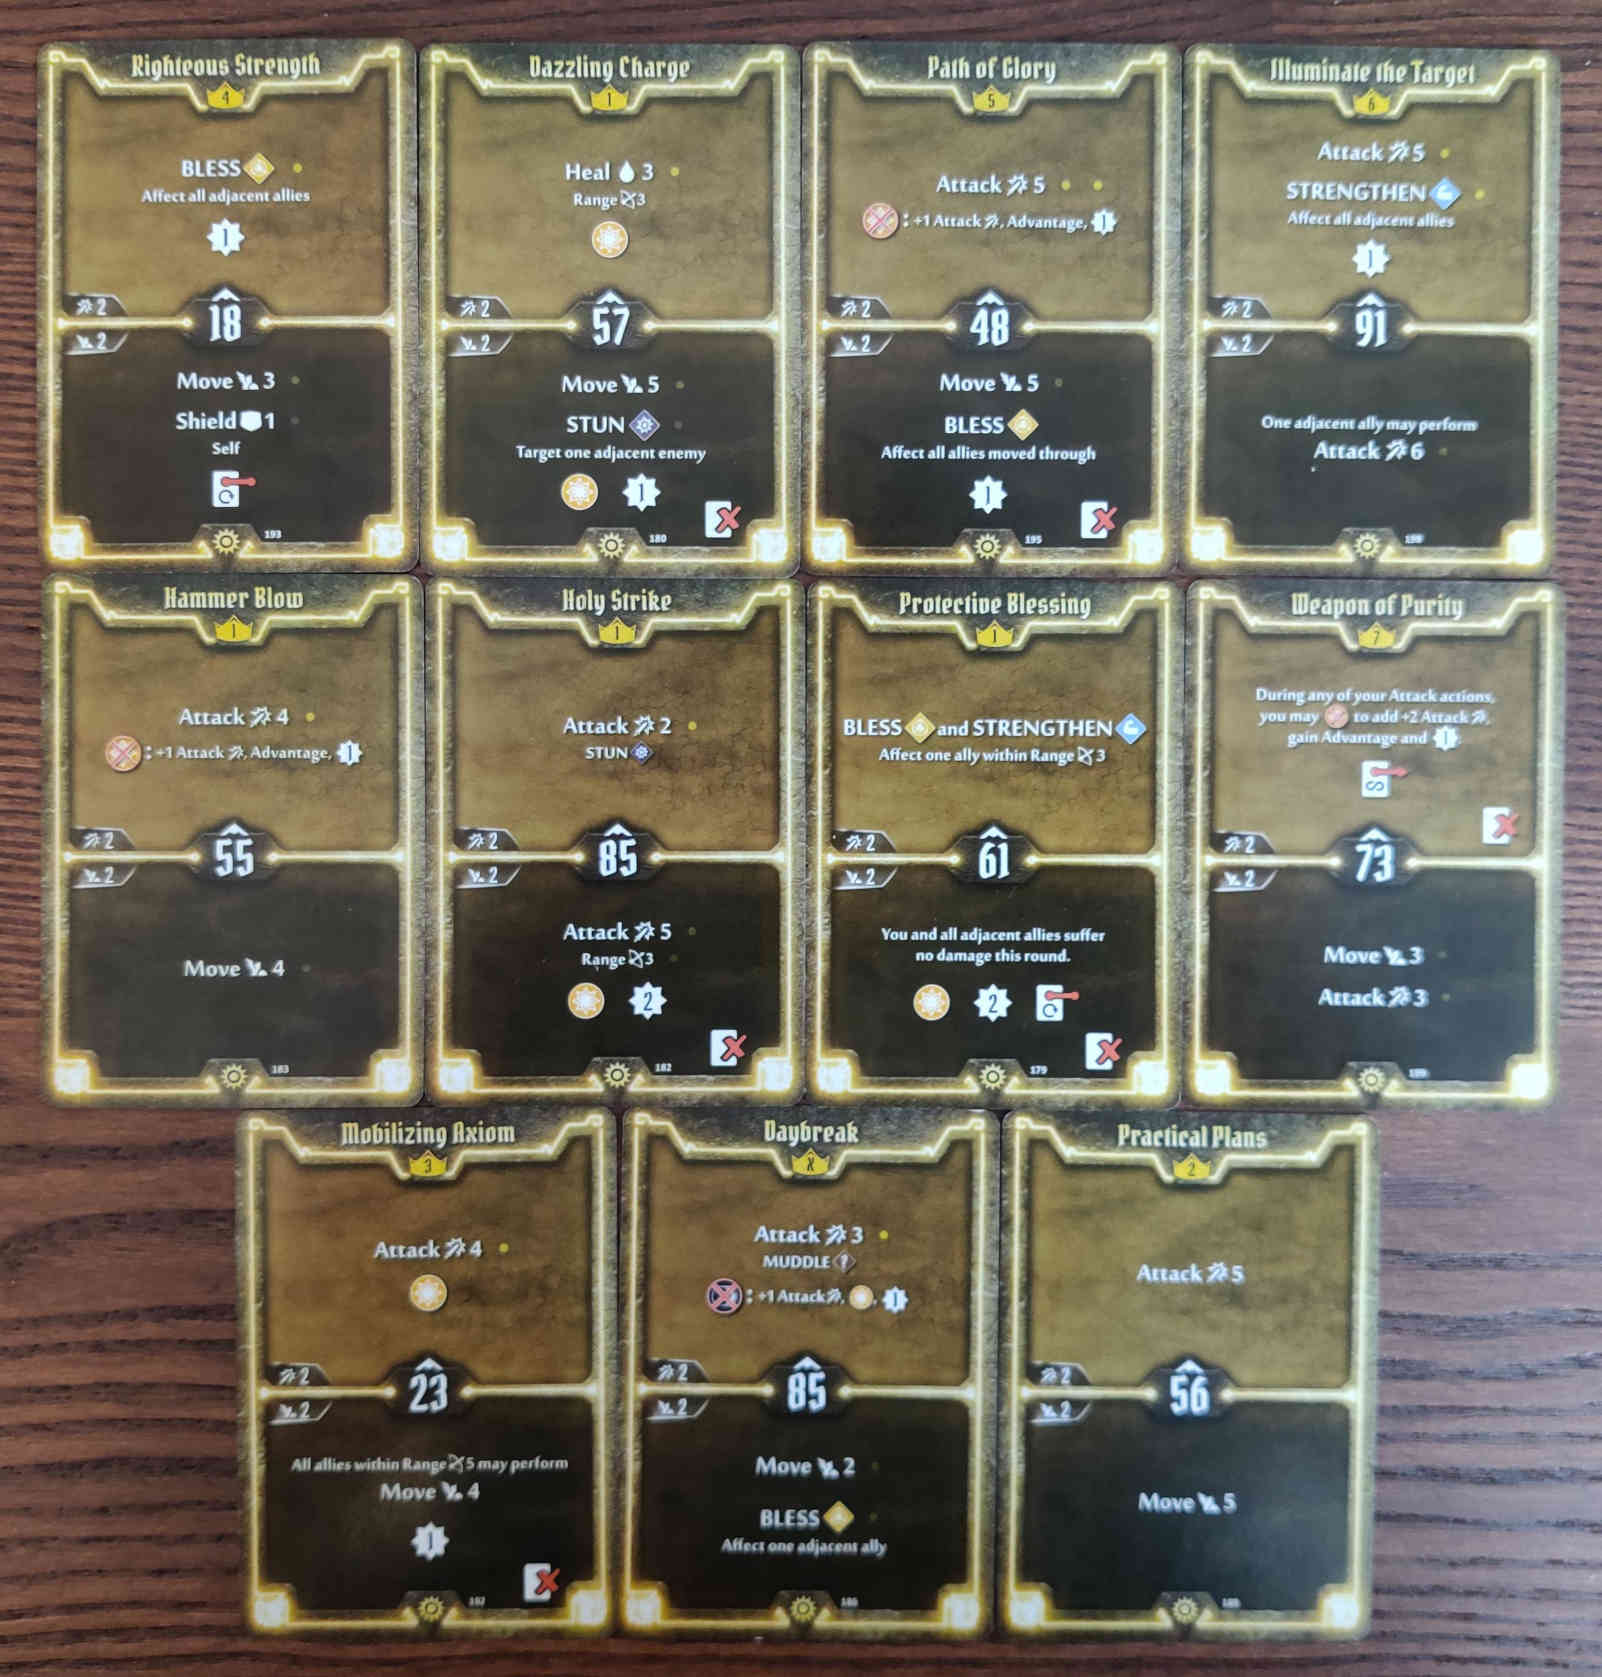 Gloomhaven Sunkeeper Damage Build Level 7 cards